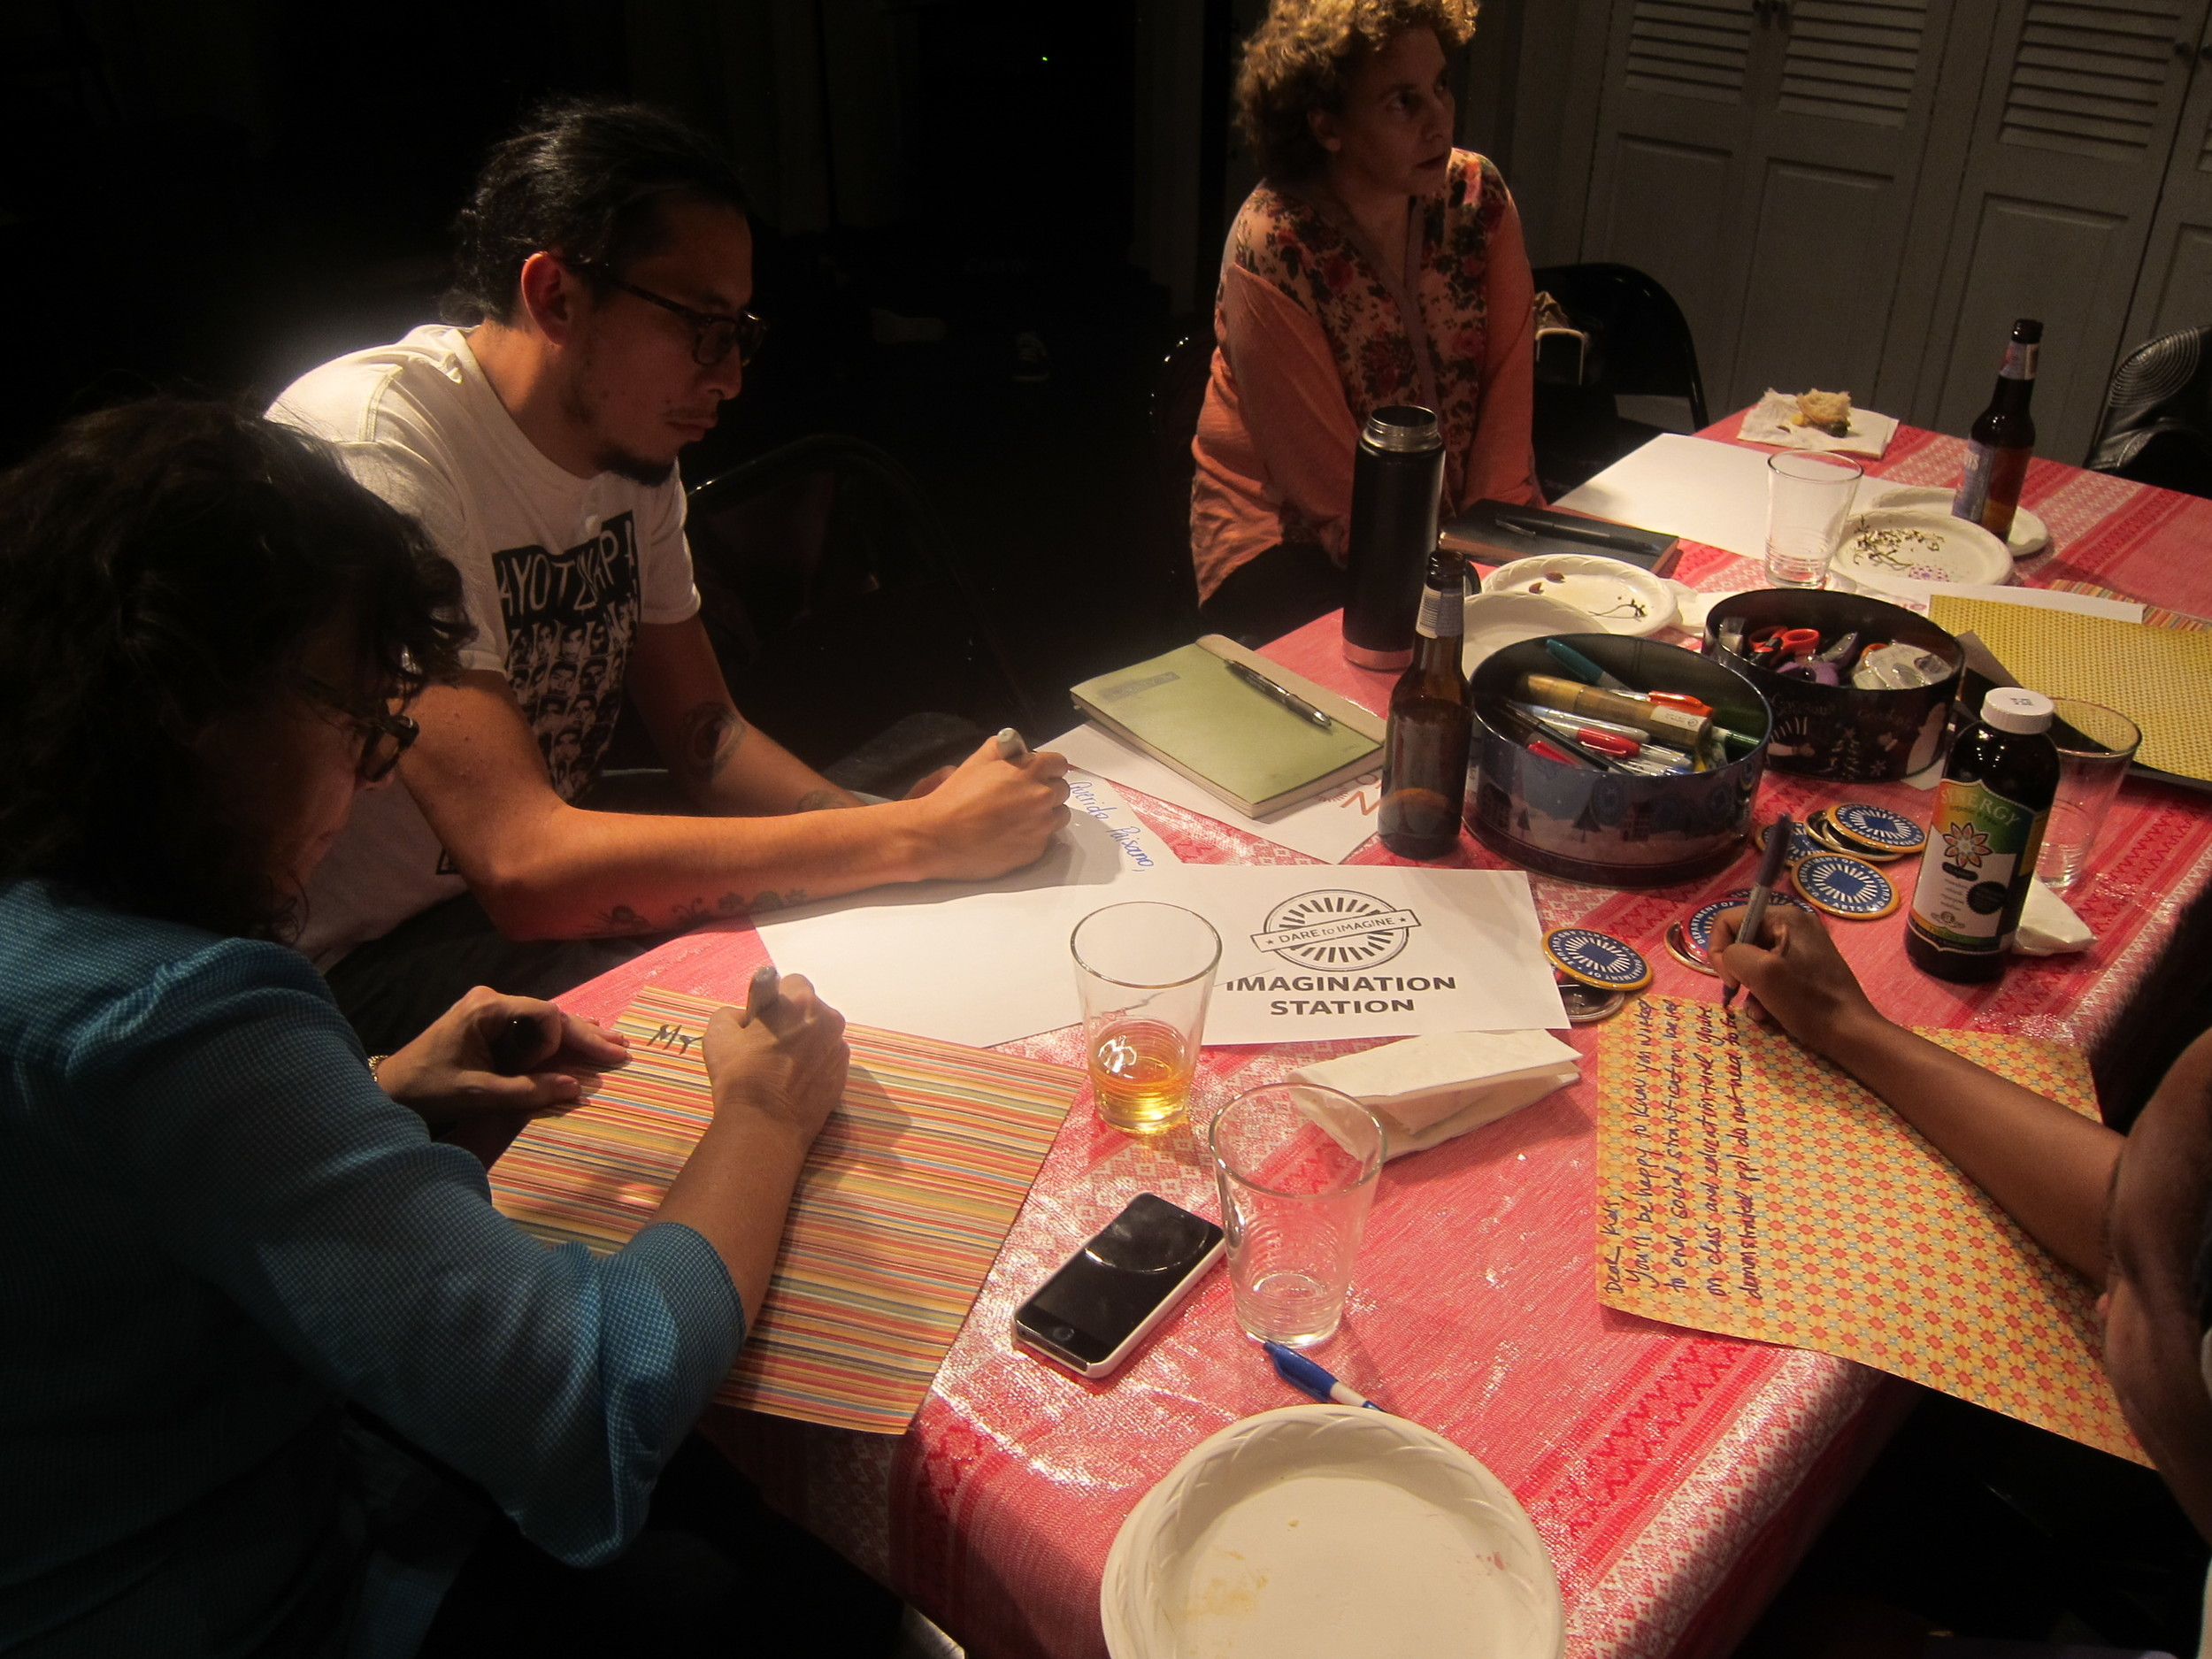 Artists Letter Writing for our Dare to Imagine with NOCD-NY